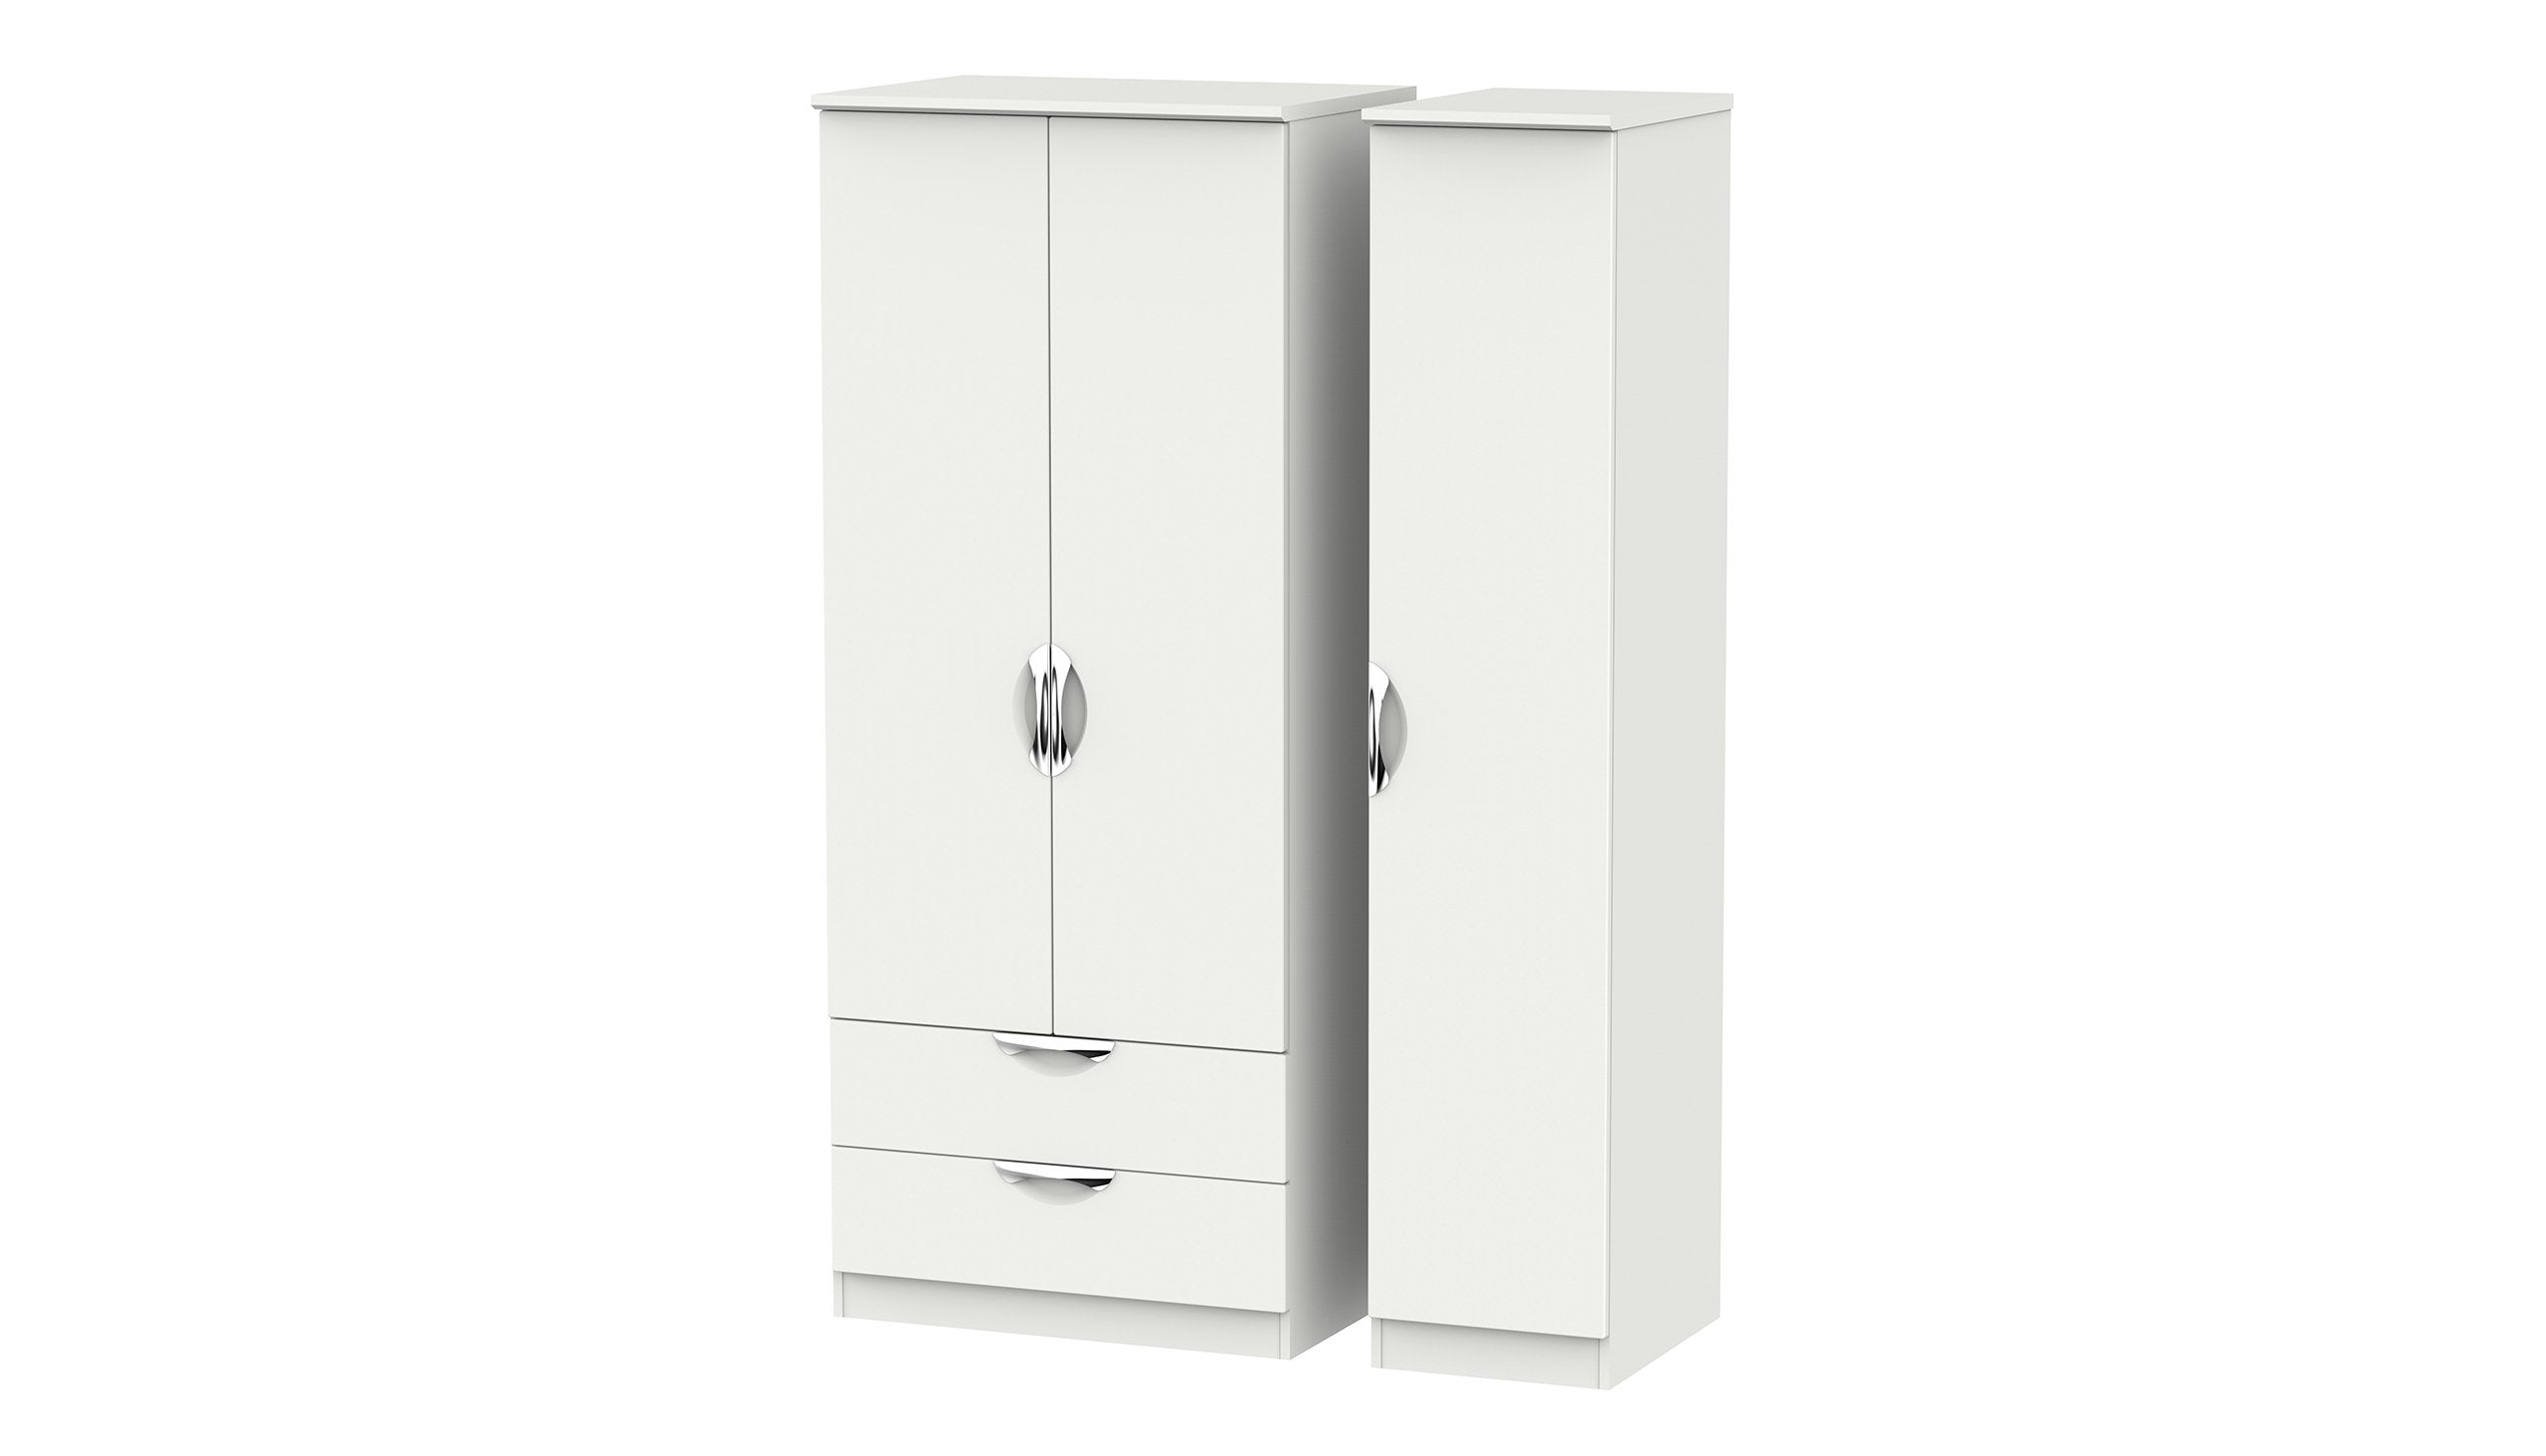 Moda 3 Door 2 Drawer Wardrobe - AHF Furniture & Carpets